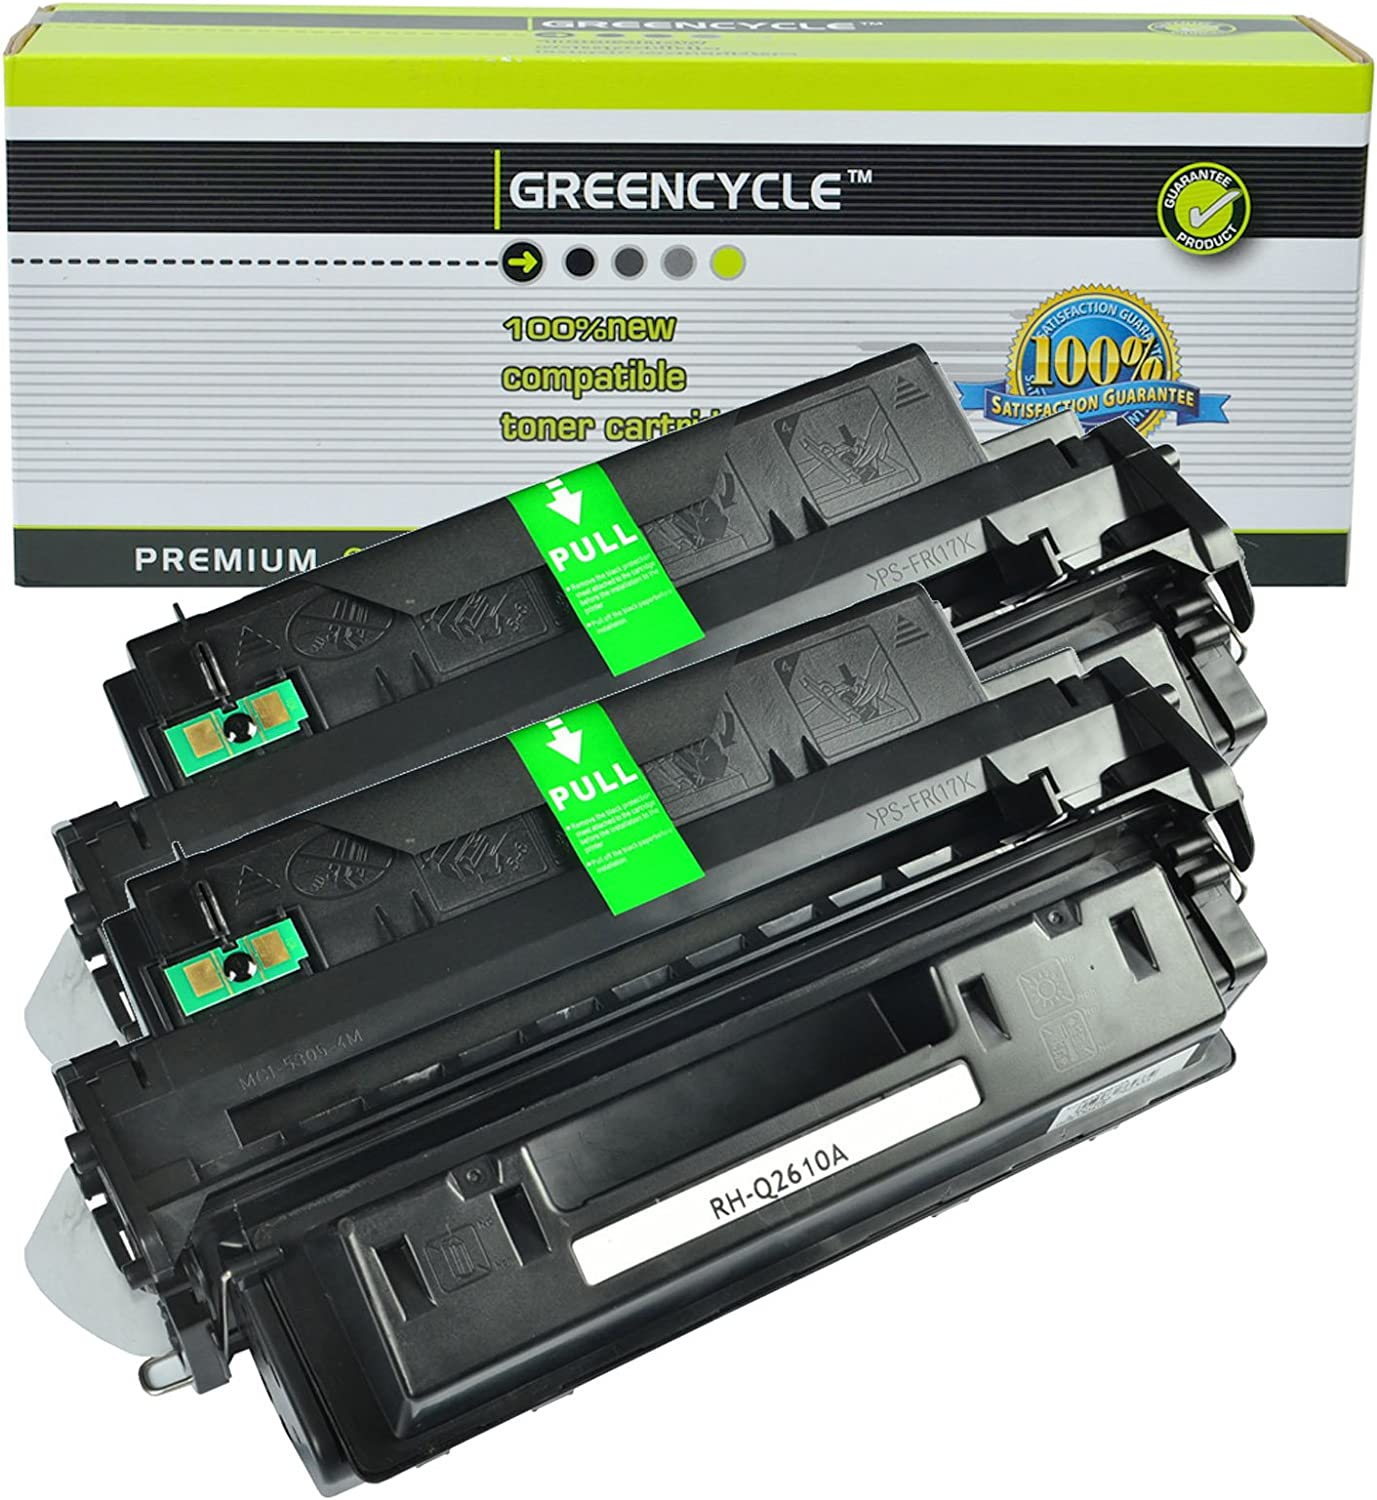 GREENCYCLE 2 Pack High Yield 10A Q2610A Toner Cartridge Replacement Compatible for HP Laserjet 2300 2300d 2300dn 2300dtn 2300L 2300n Printer